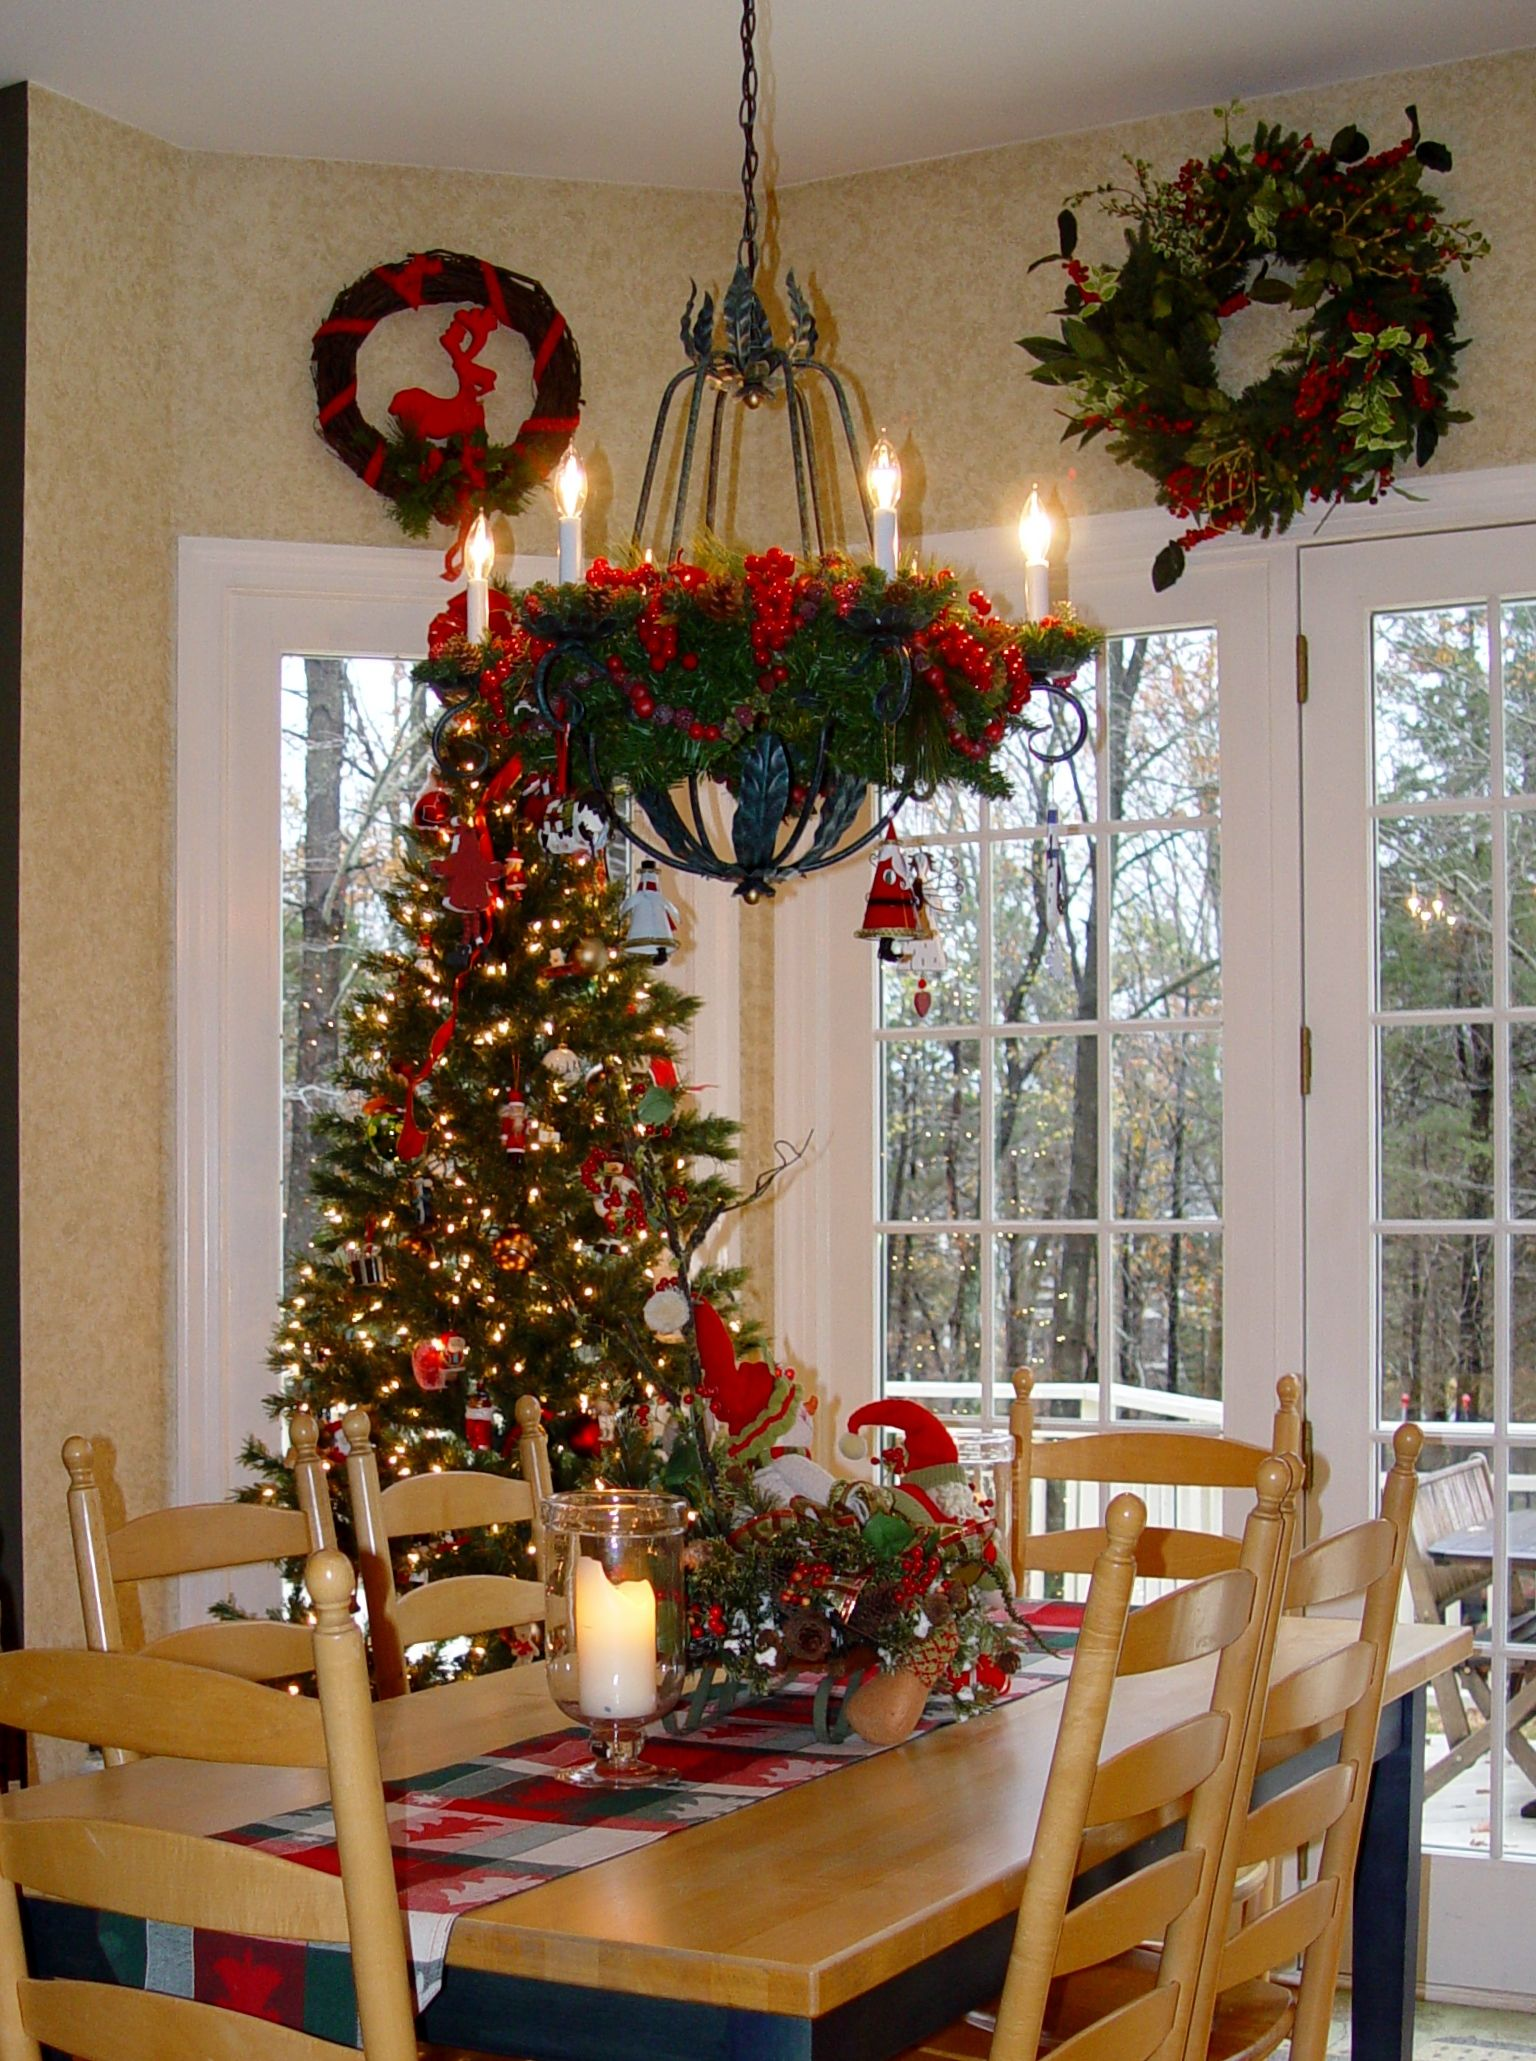 Holiday decor christmas decorations christmas treewrought iron holiday decor christmas decorations christmas treewrought iron chandelier with greeneryhanging mozeypictures Image collections